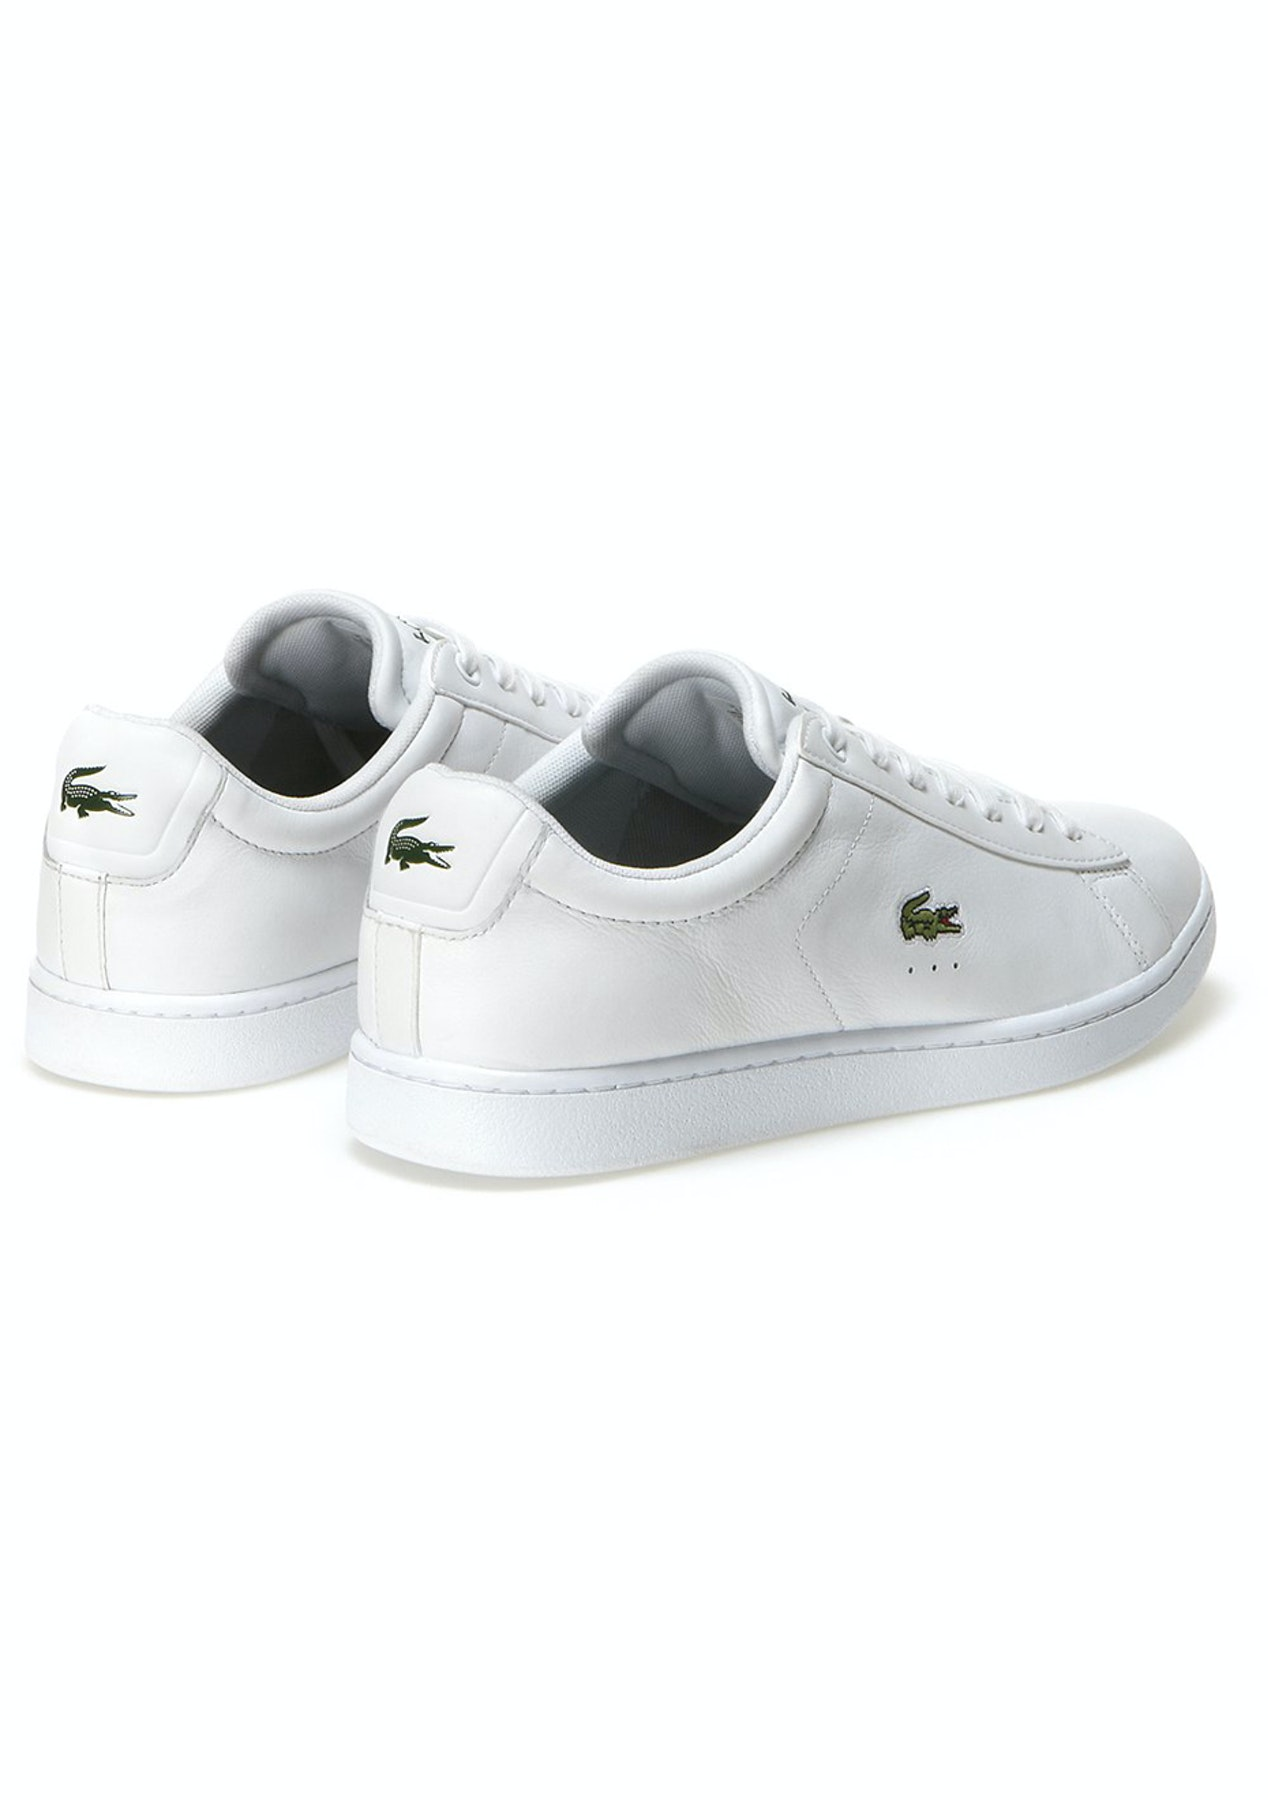 c0c708e11a5 Mens Lacoste - Carnaby Evo Lcr Spm - White - Last Ones  Mens Shoes - Onceit